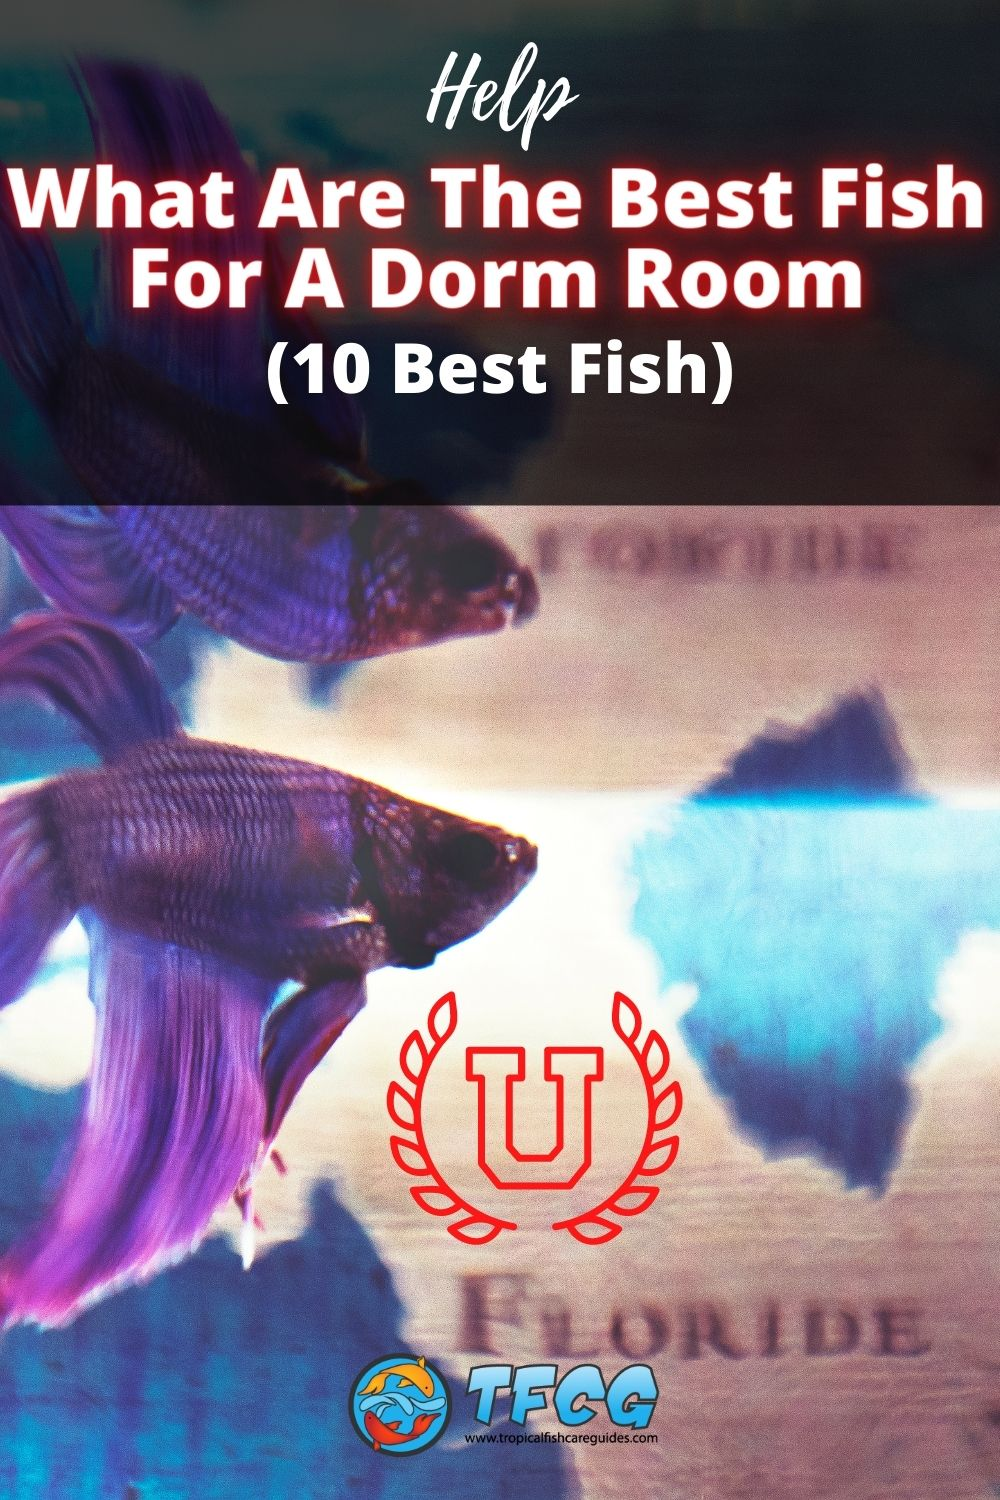 Fish For A Dorm Room